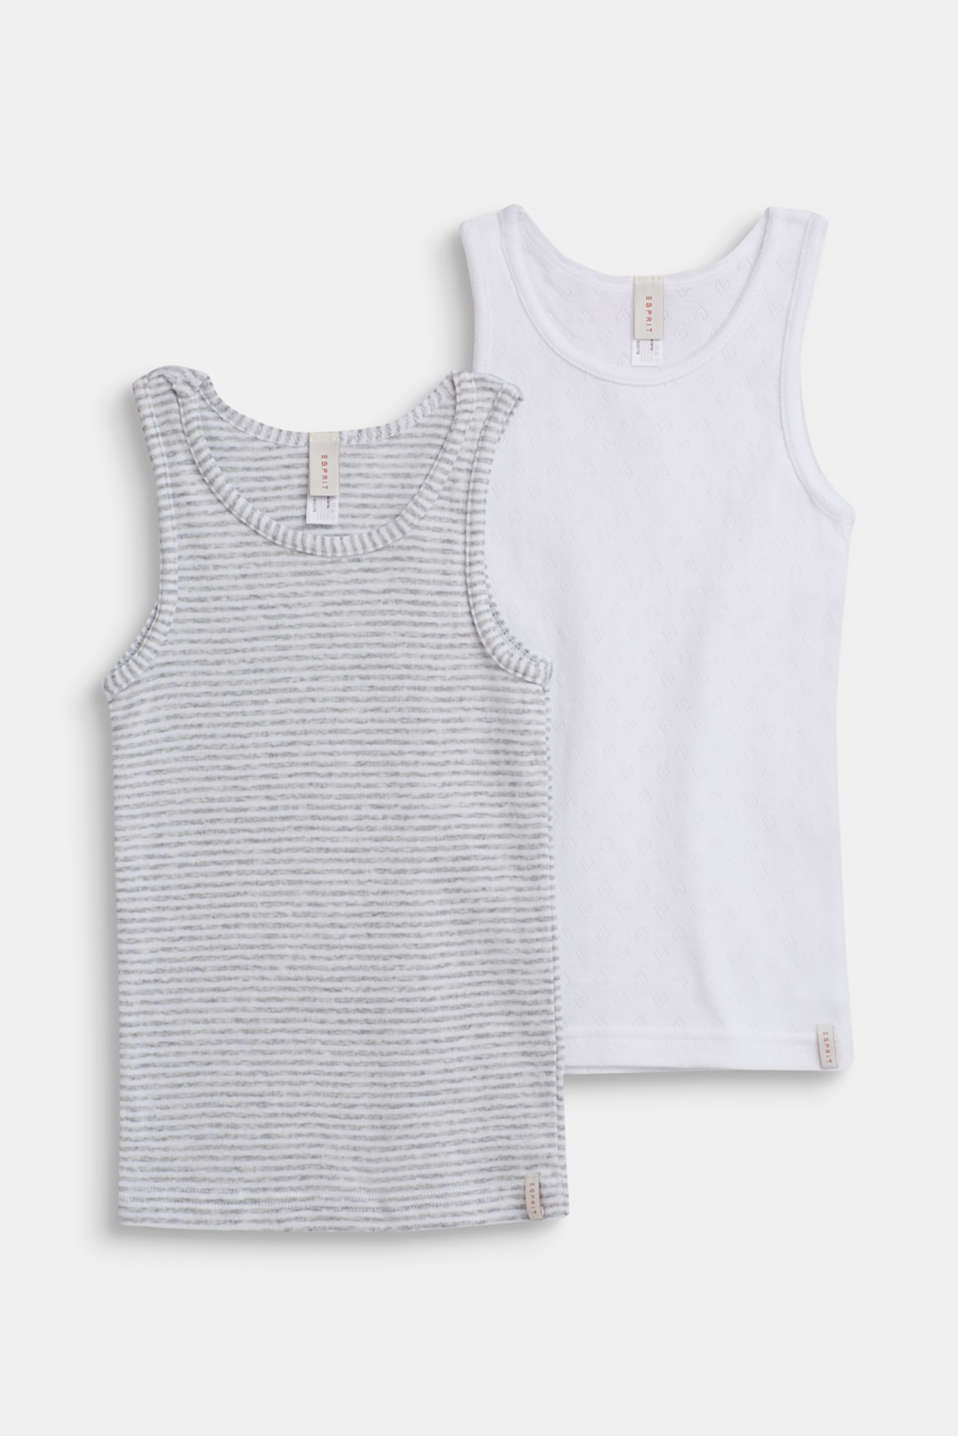 Esprit - Tops in a double pack, 100% cotton